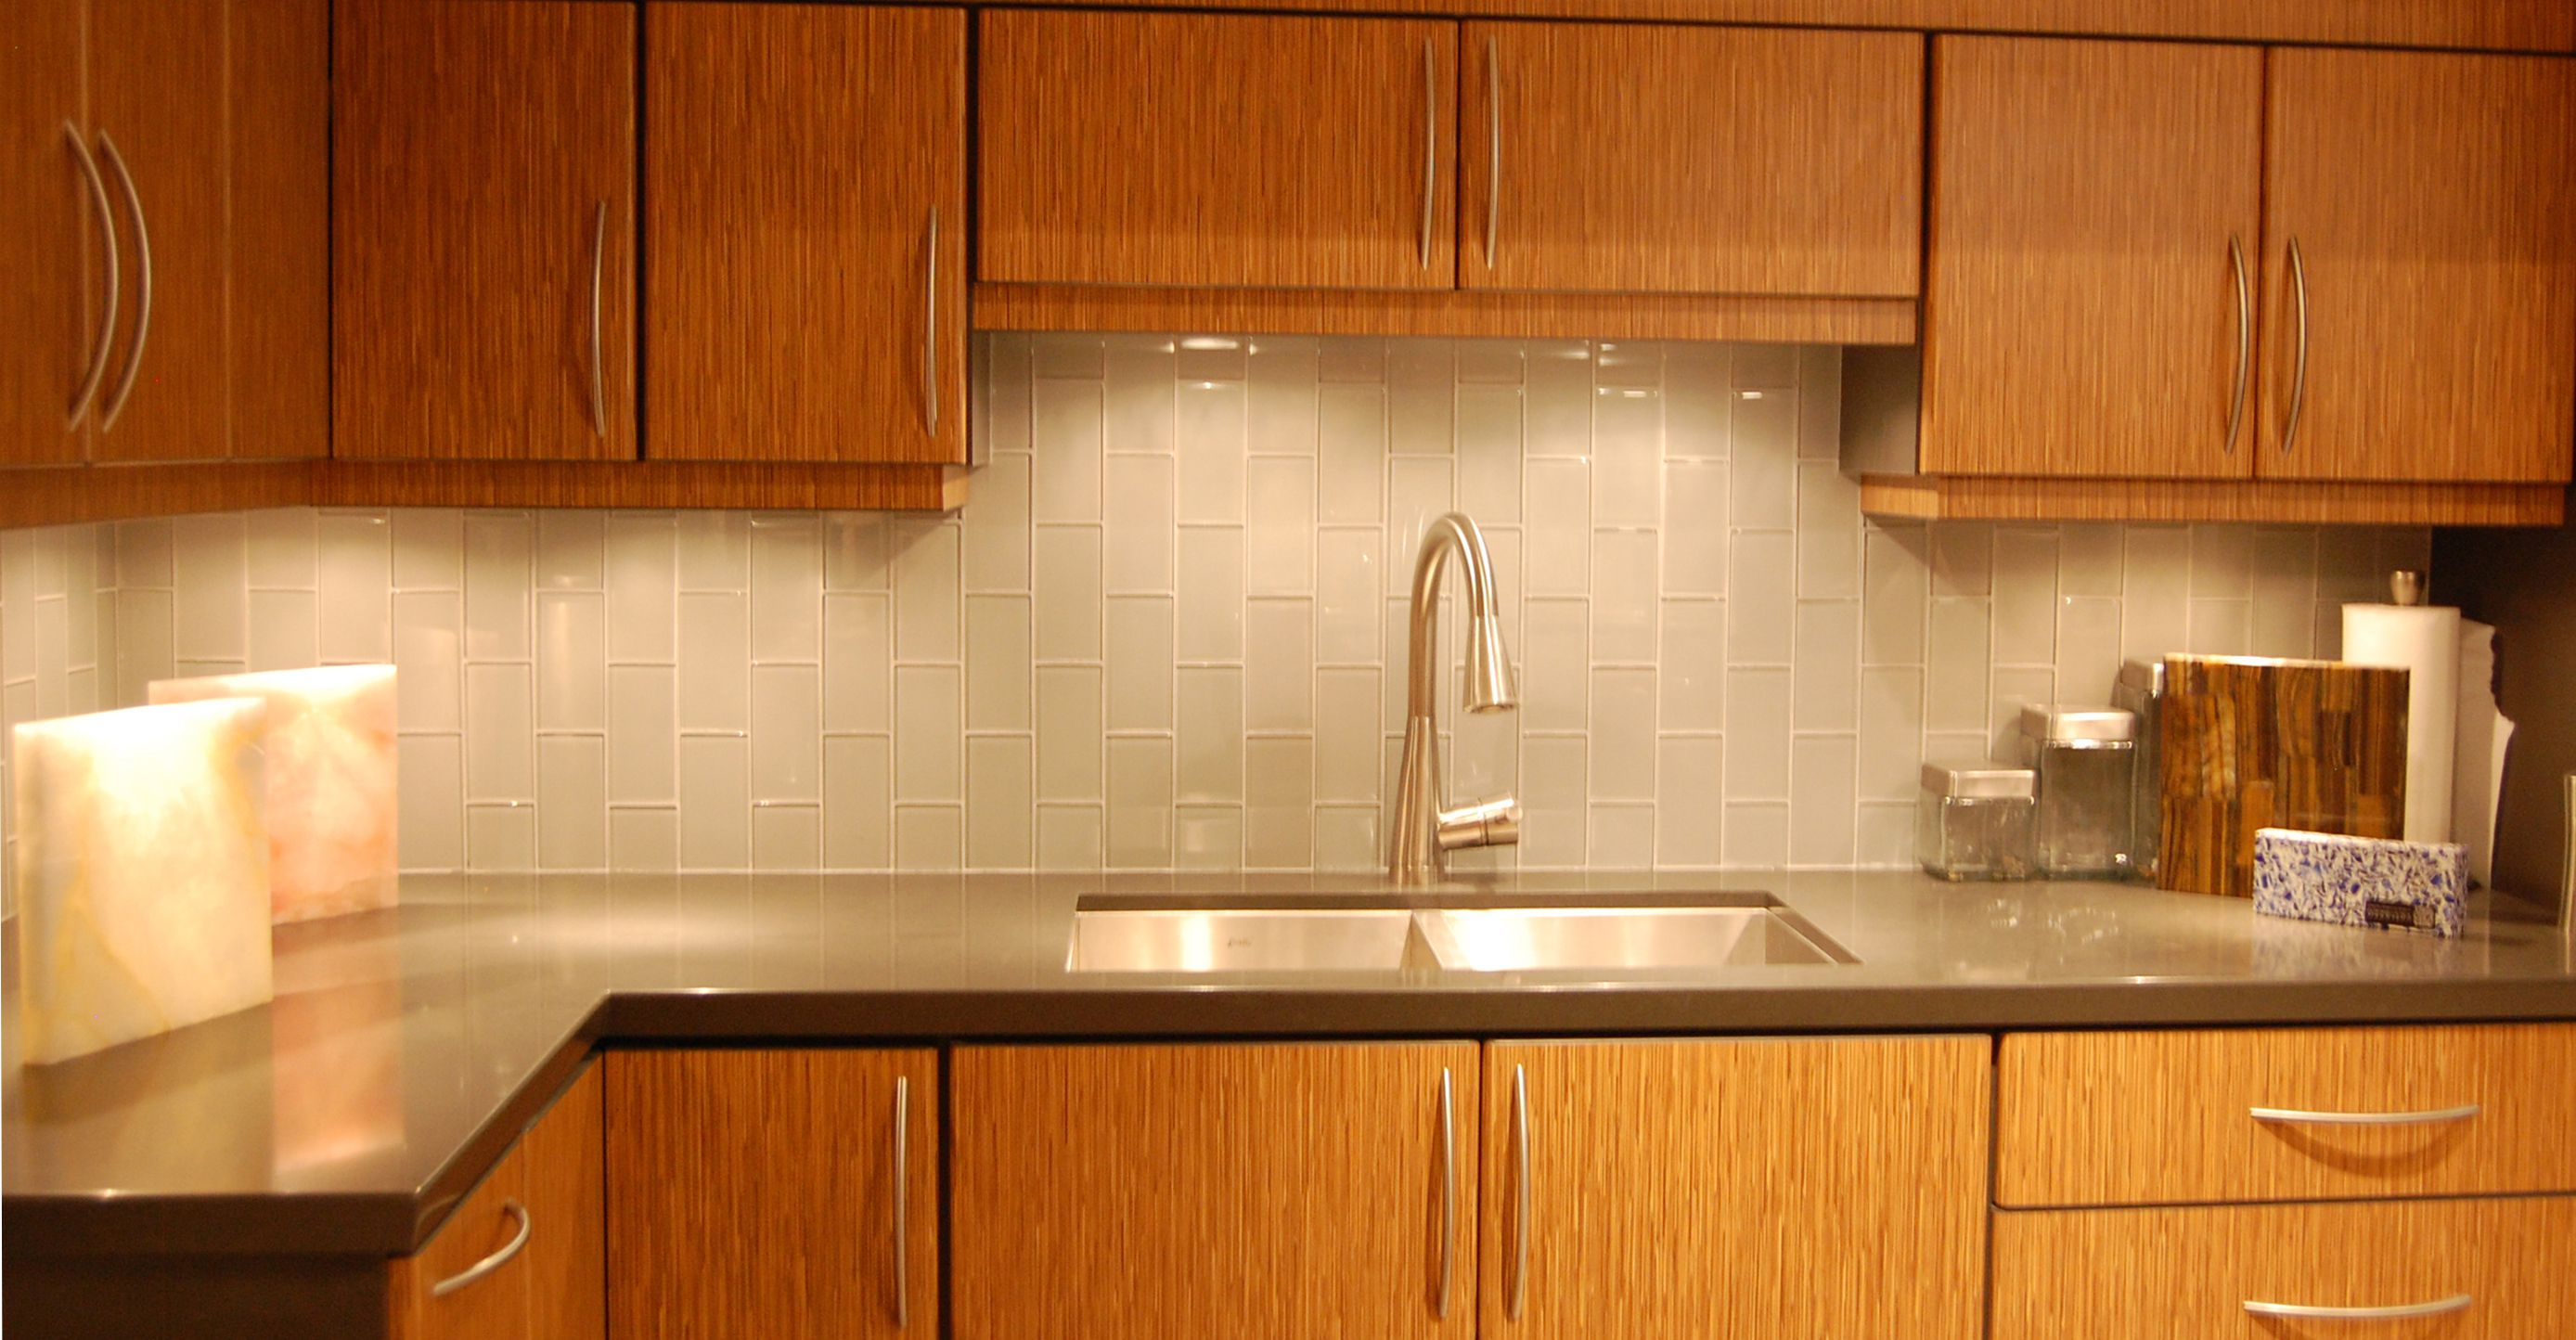 Magnificent  Kitchen Design With Cabinet also Steel Faucet and Sink Plus Ceramic Backsplash